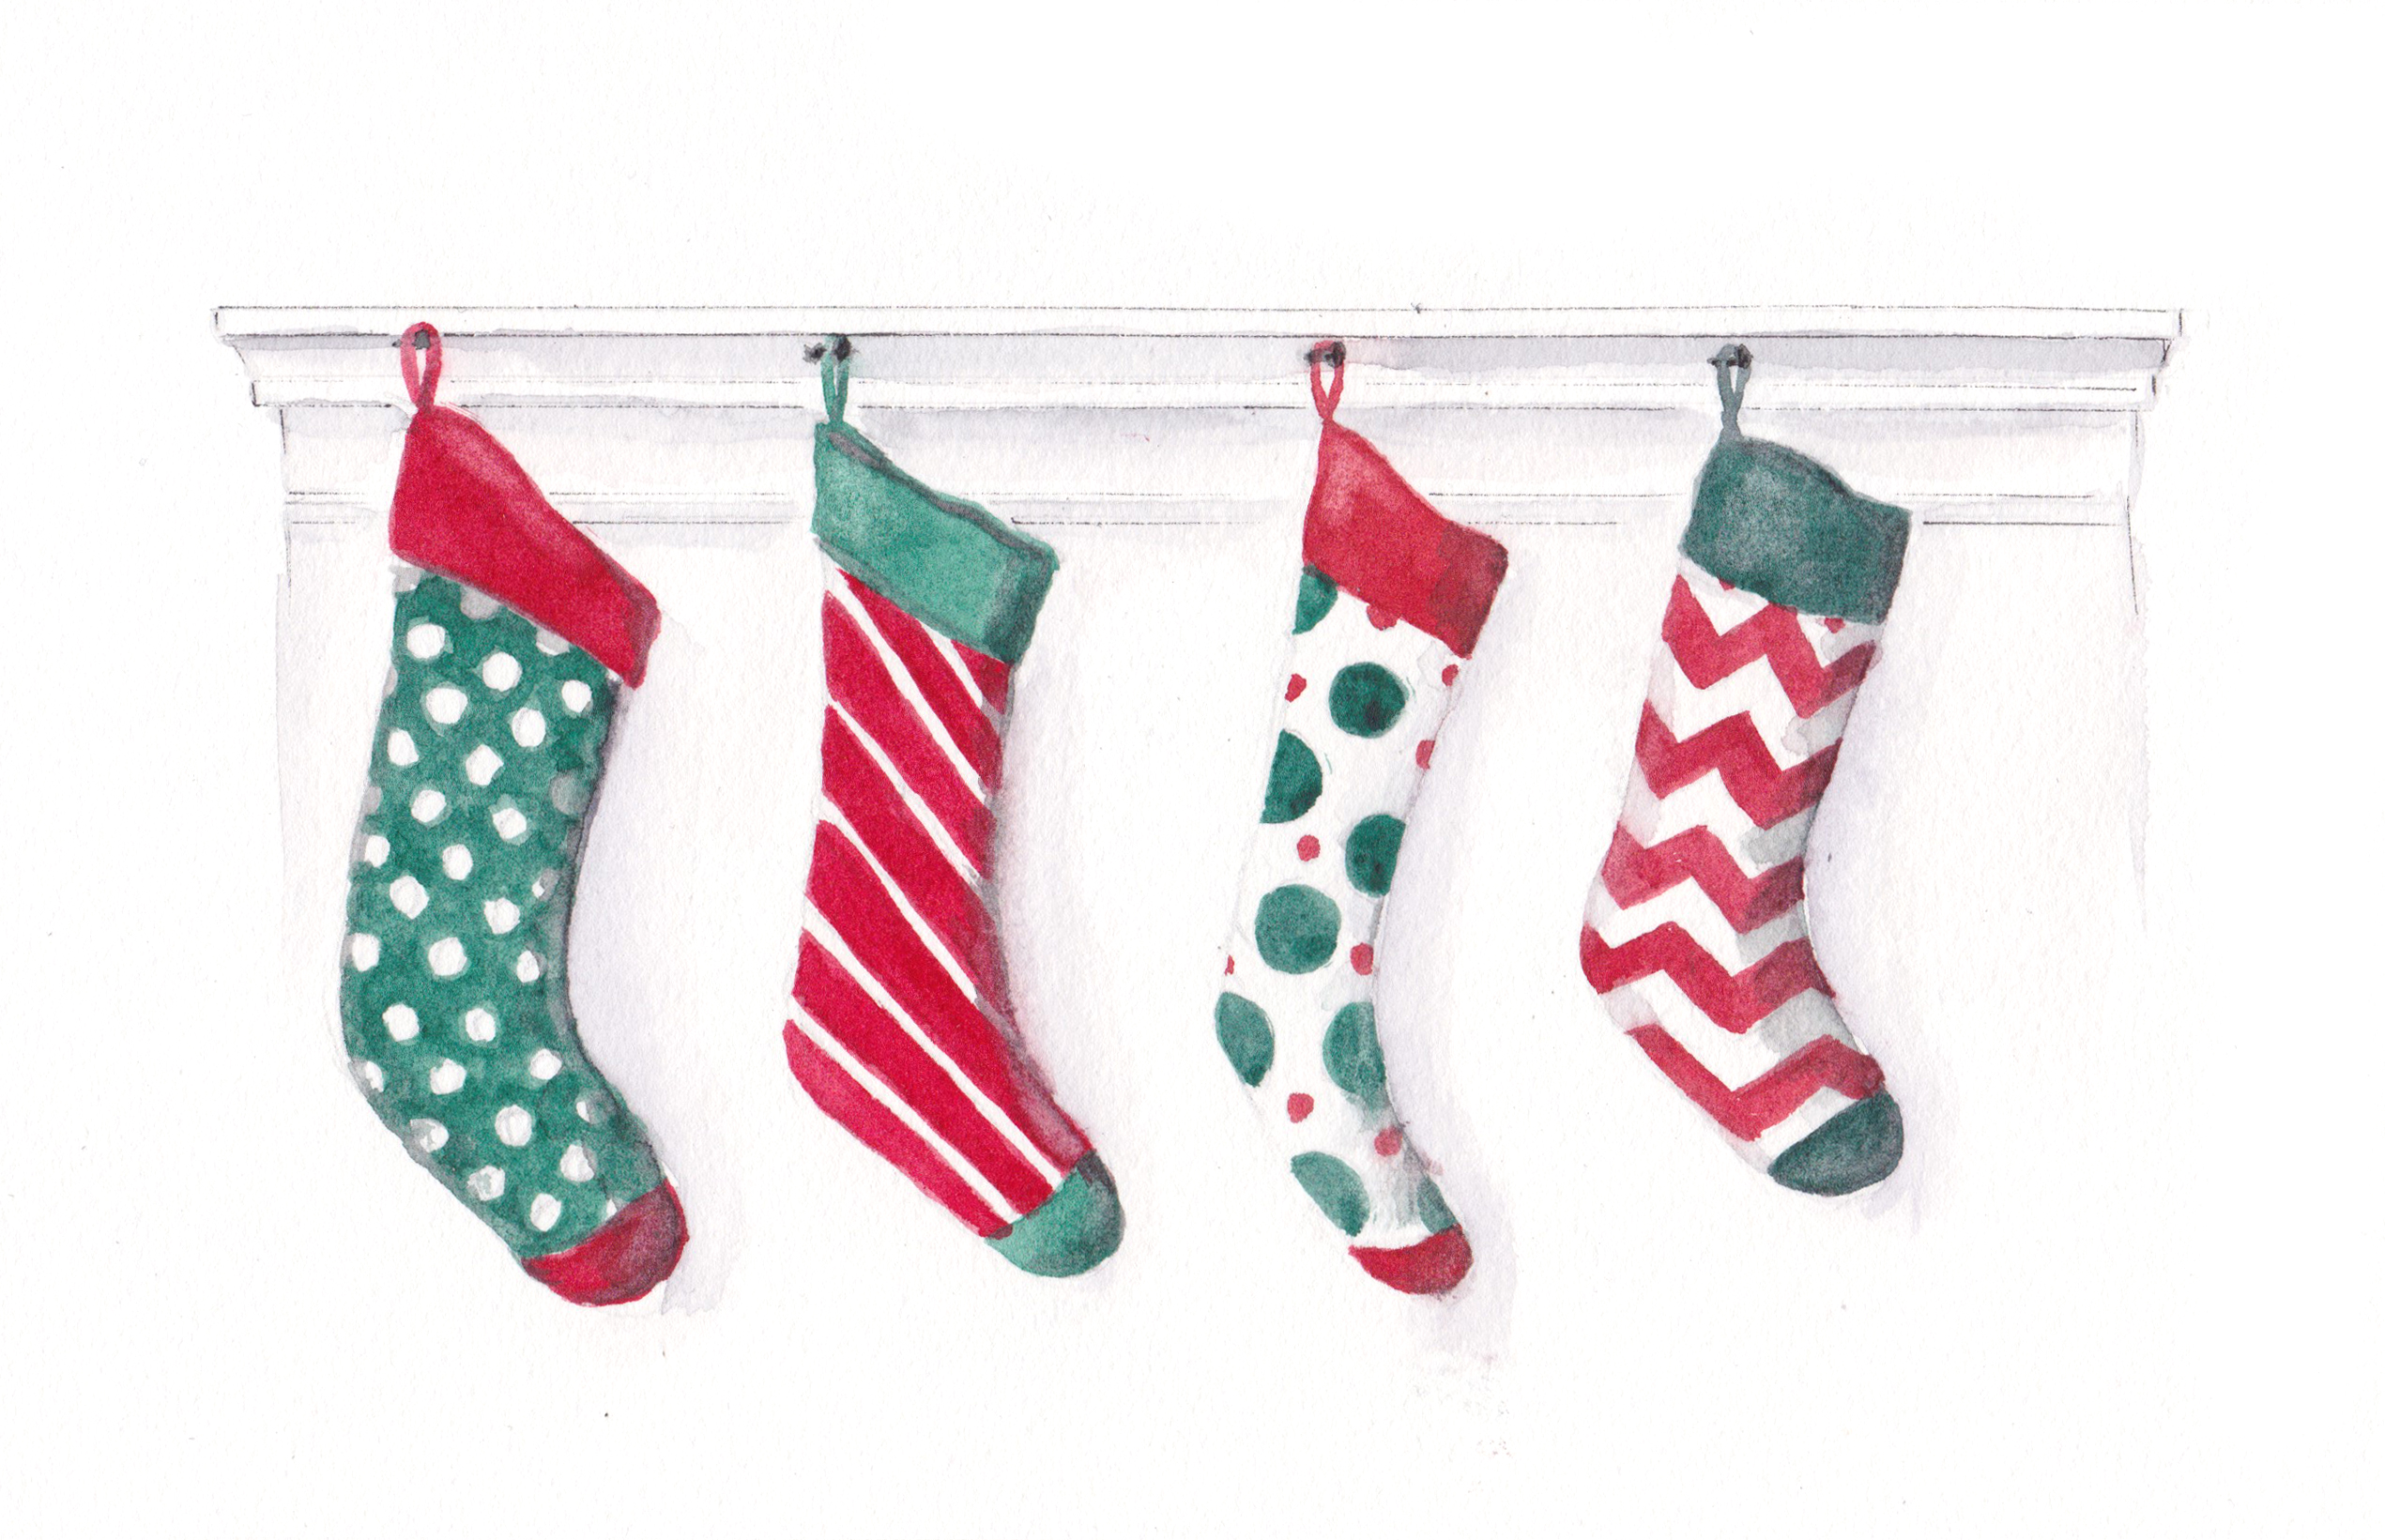 4 Hanging Stockings Original Watercolor Esther Beler Wodrich